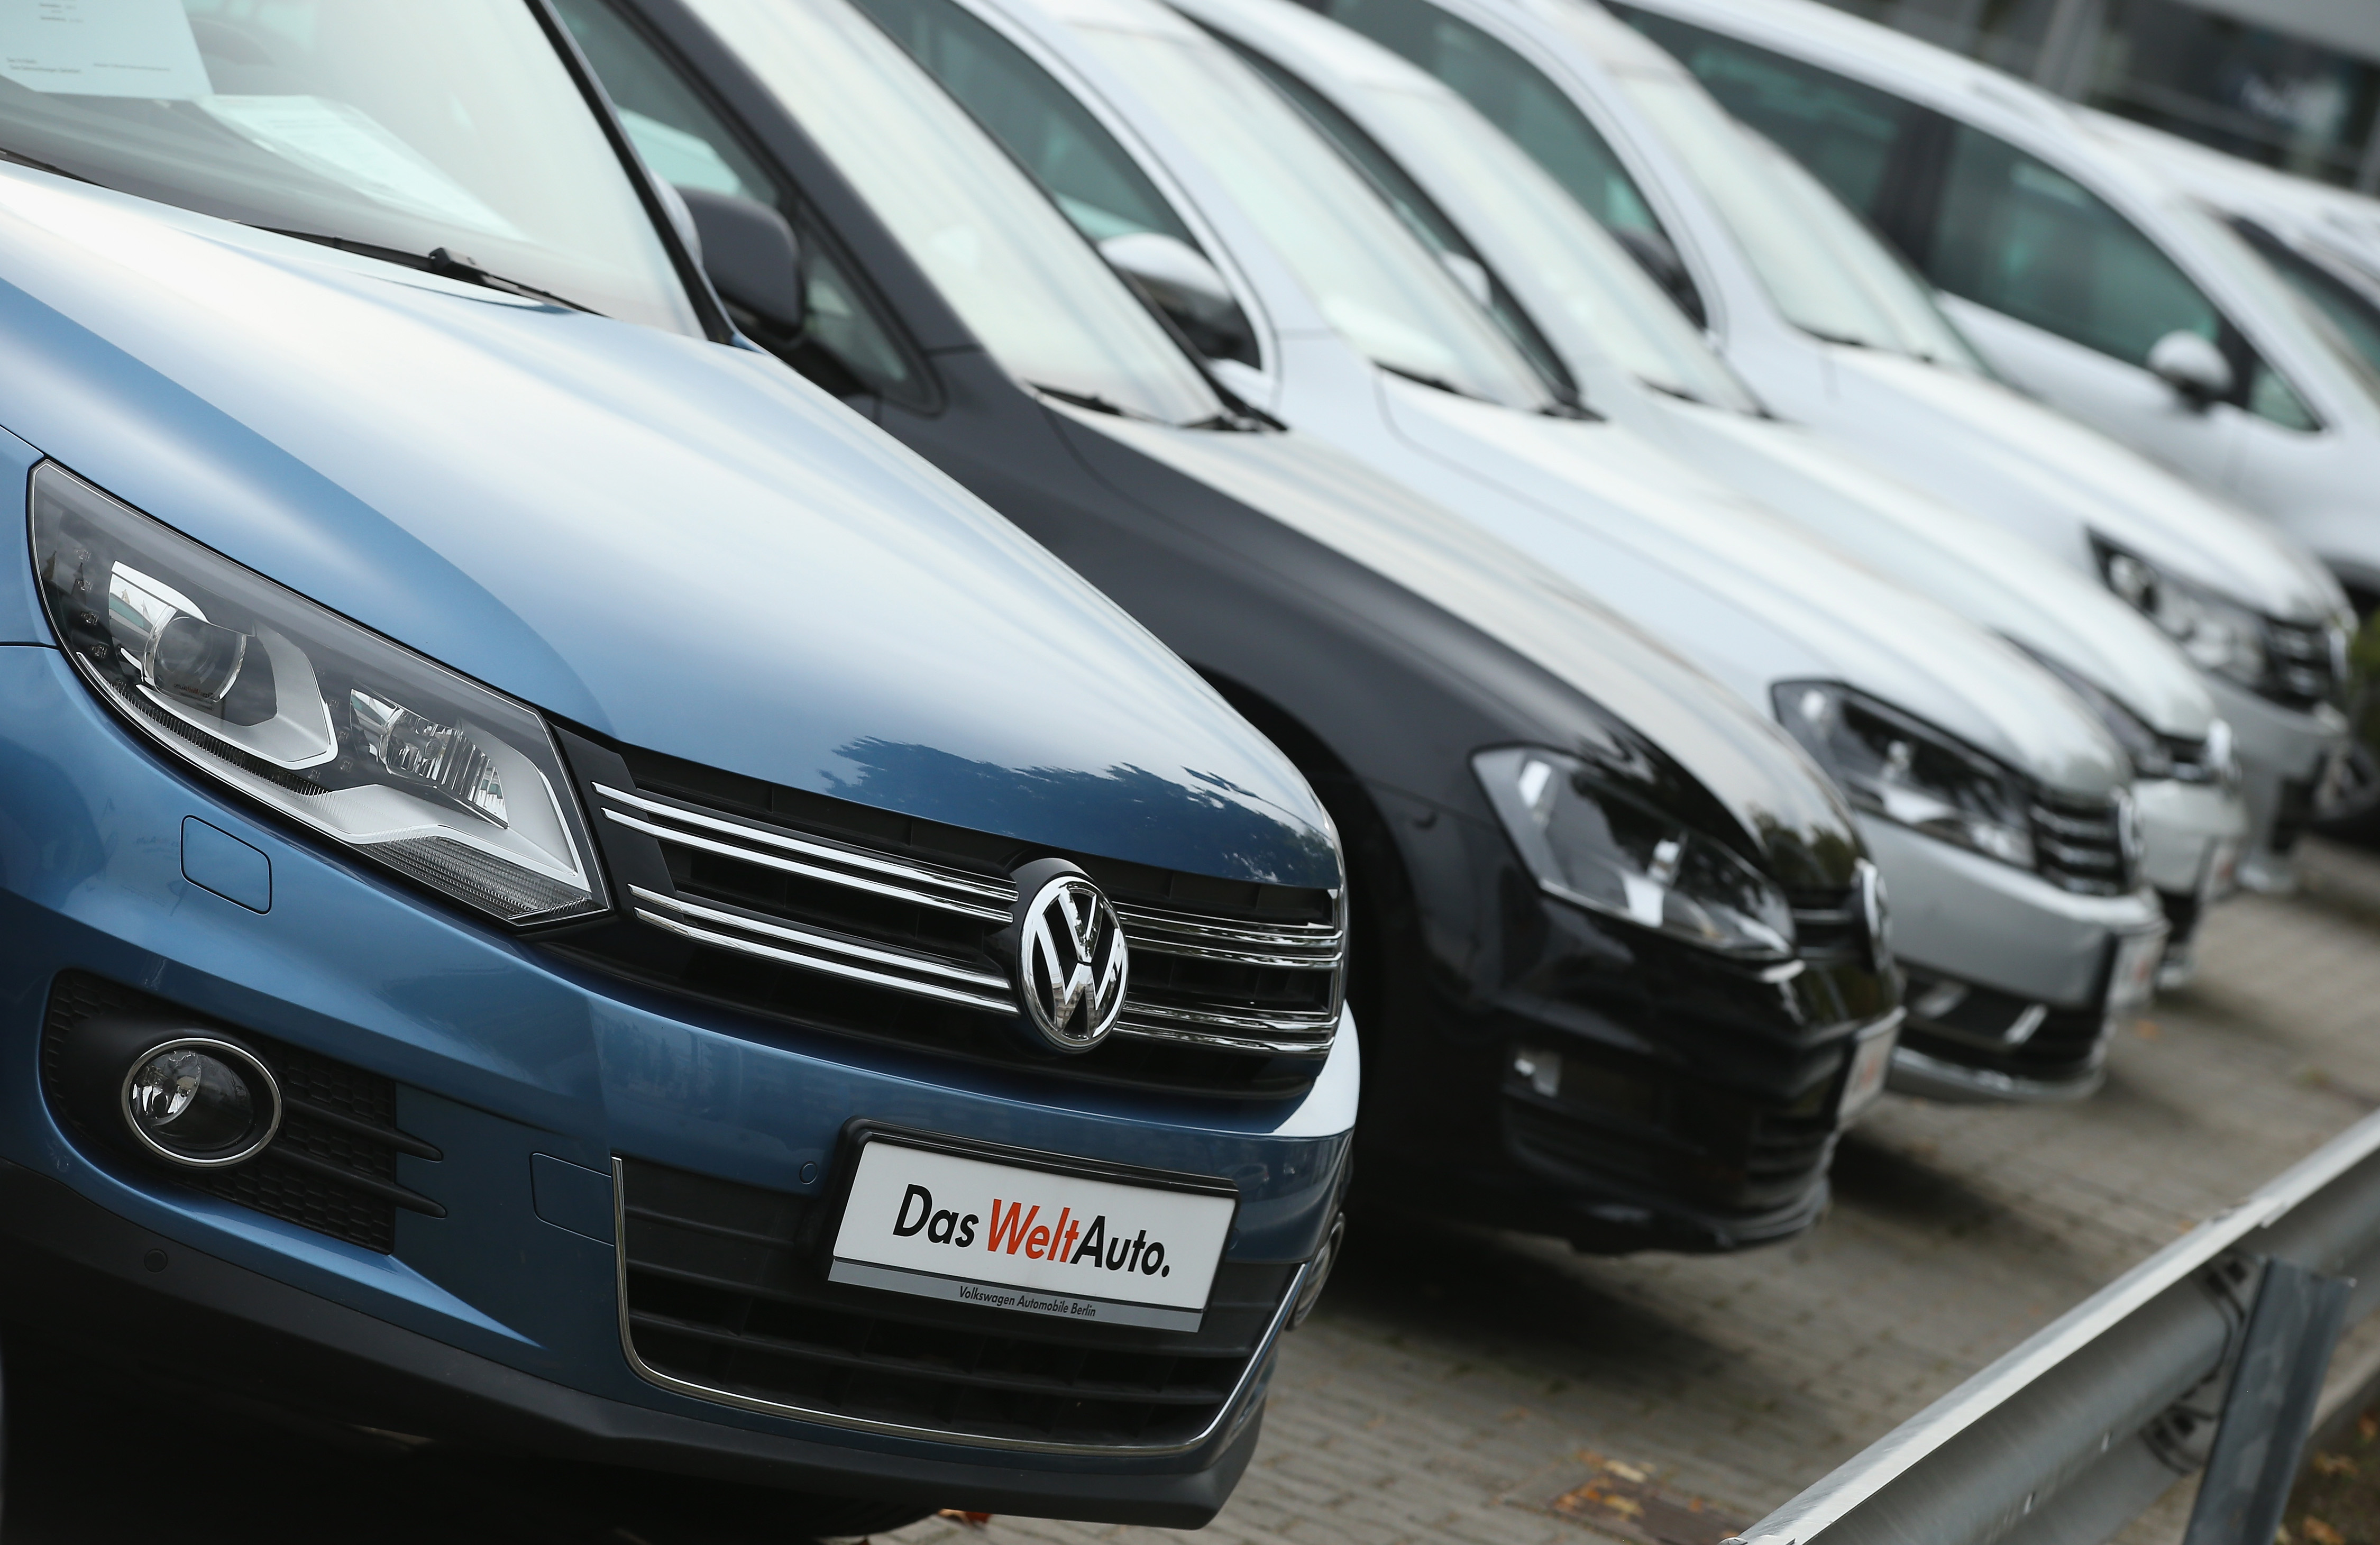 Used cars of German carmaker Volkswagen stand on display at a Volkswagen car dealership on September 22, 2015 in Berlin, Germany.